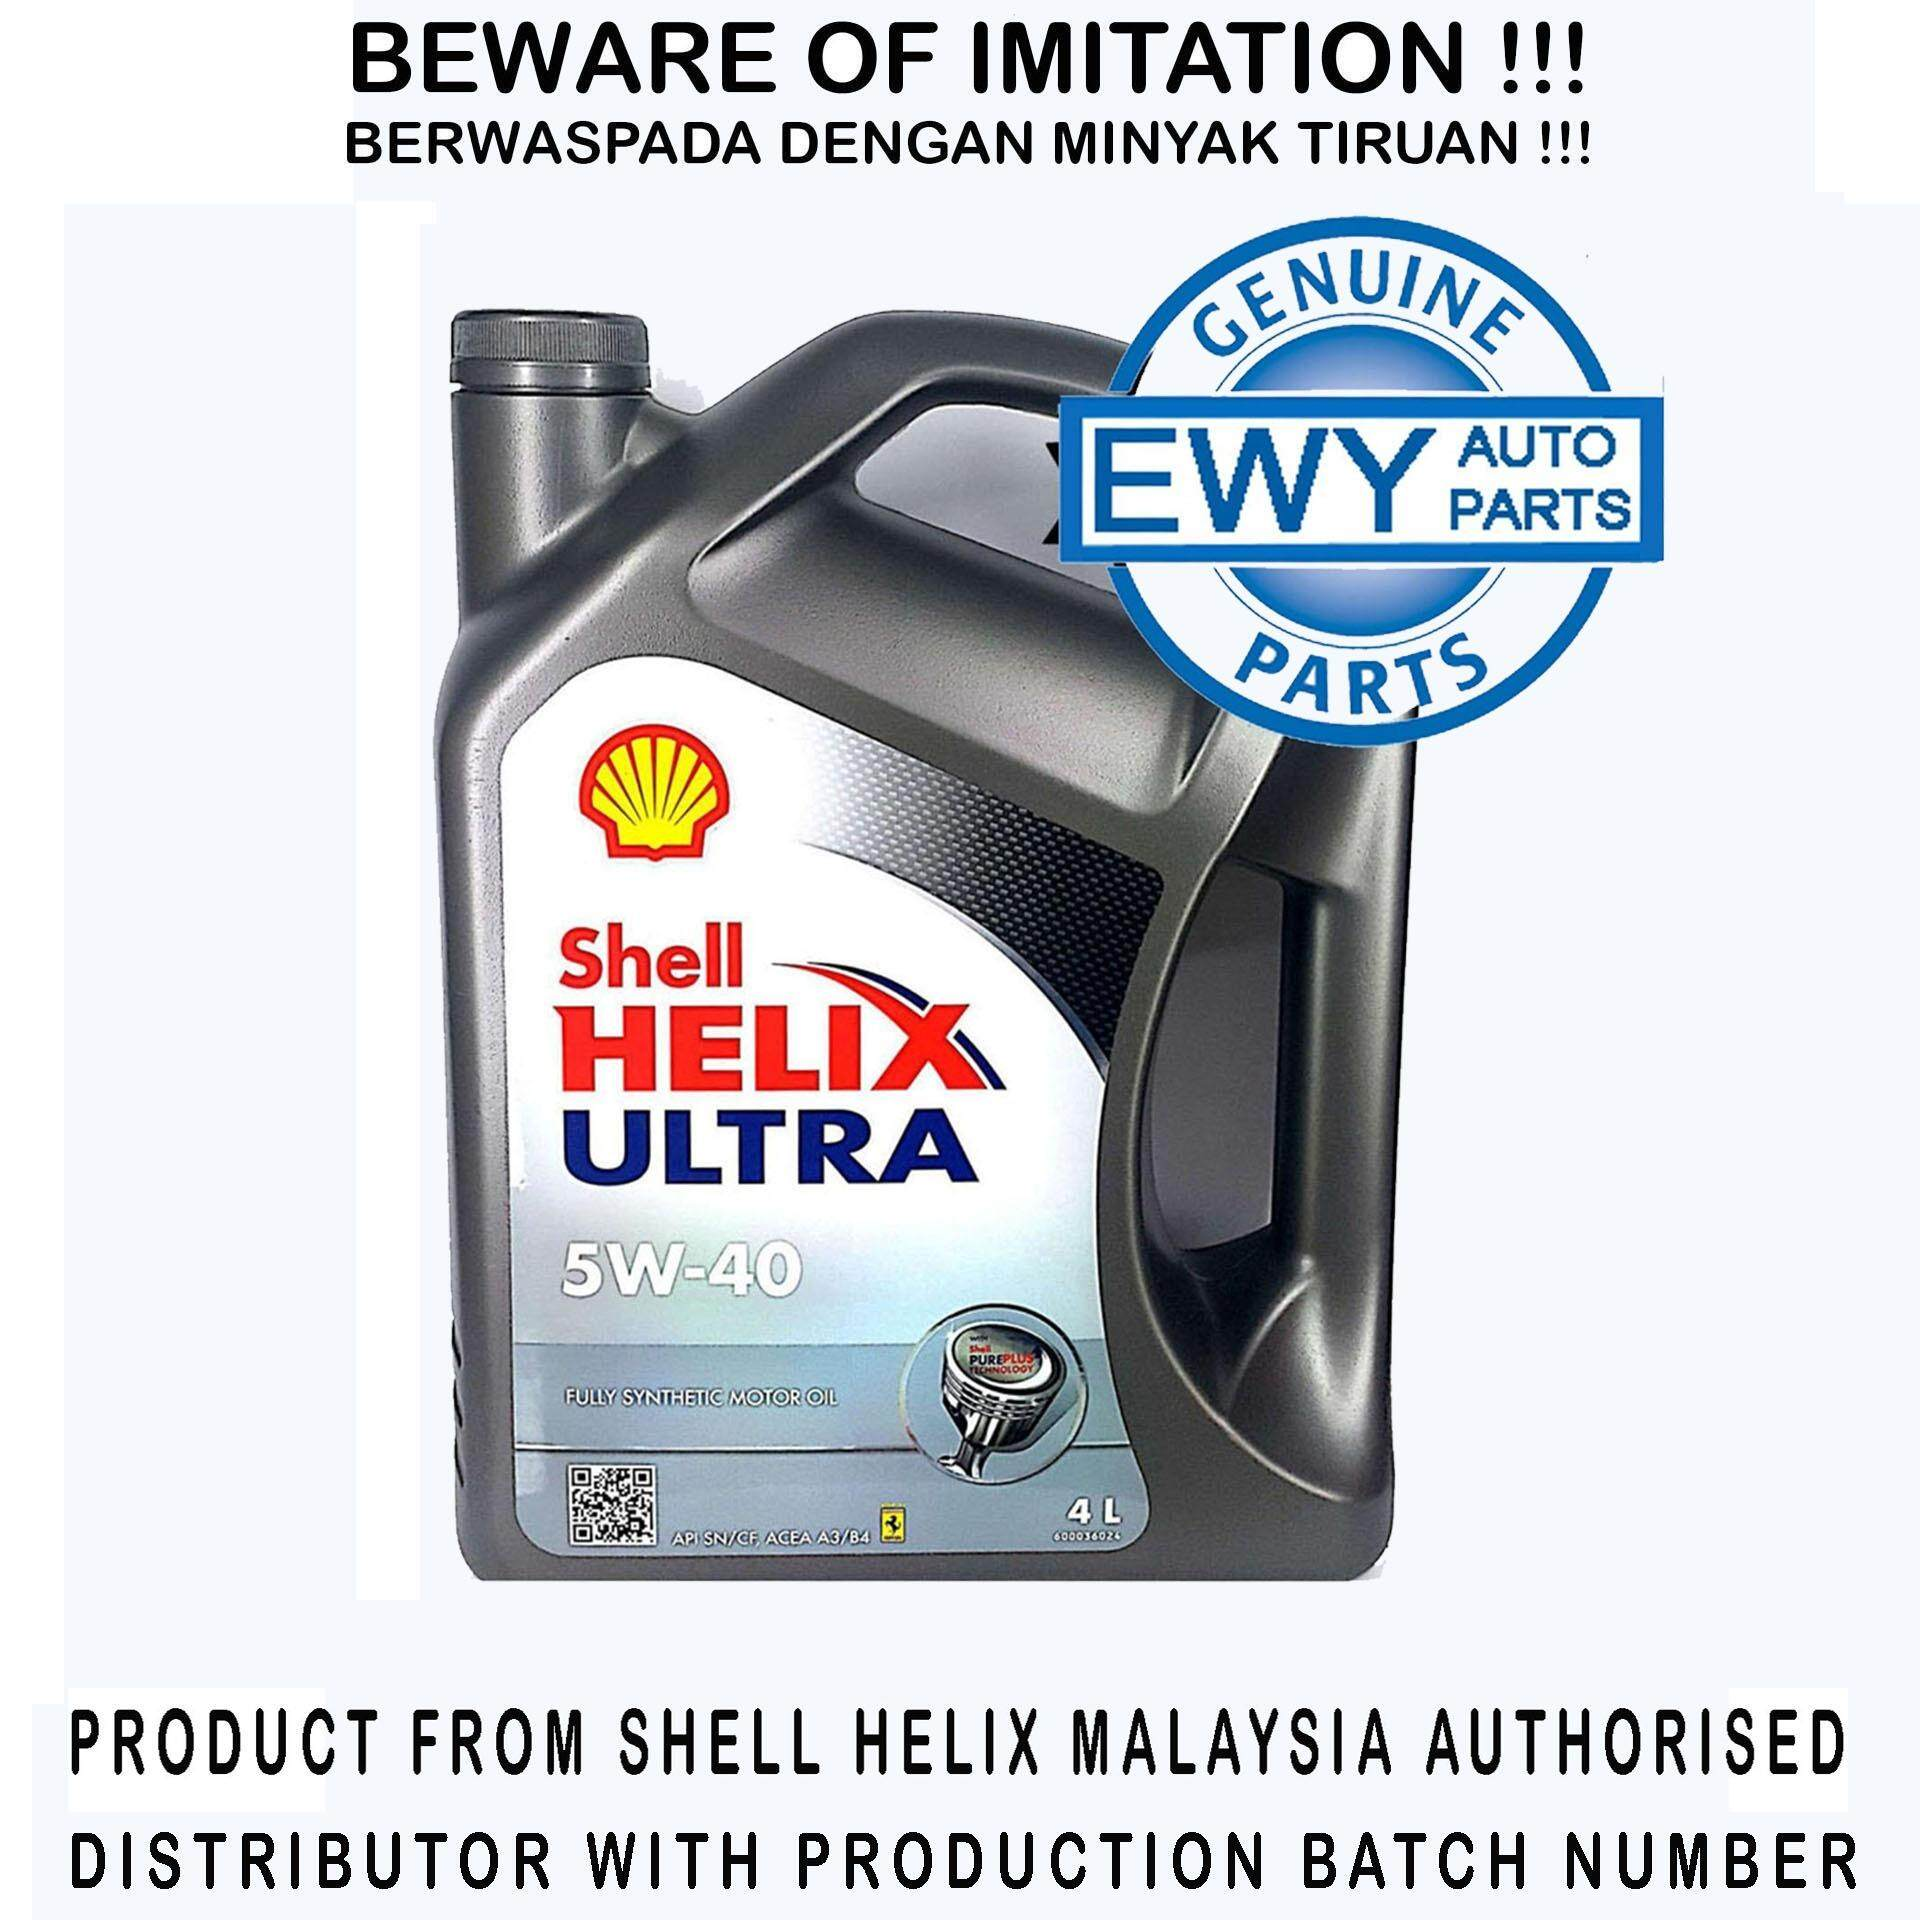 Shell Products For The Best Prices In Malaysia Helix Hx5 15w 40 Api Sn Oli Mobil Mesin Bensin 4 Liter Engine Heaters Accessories